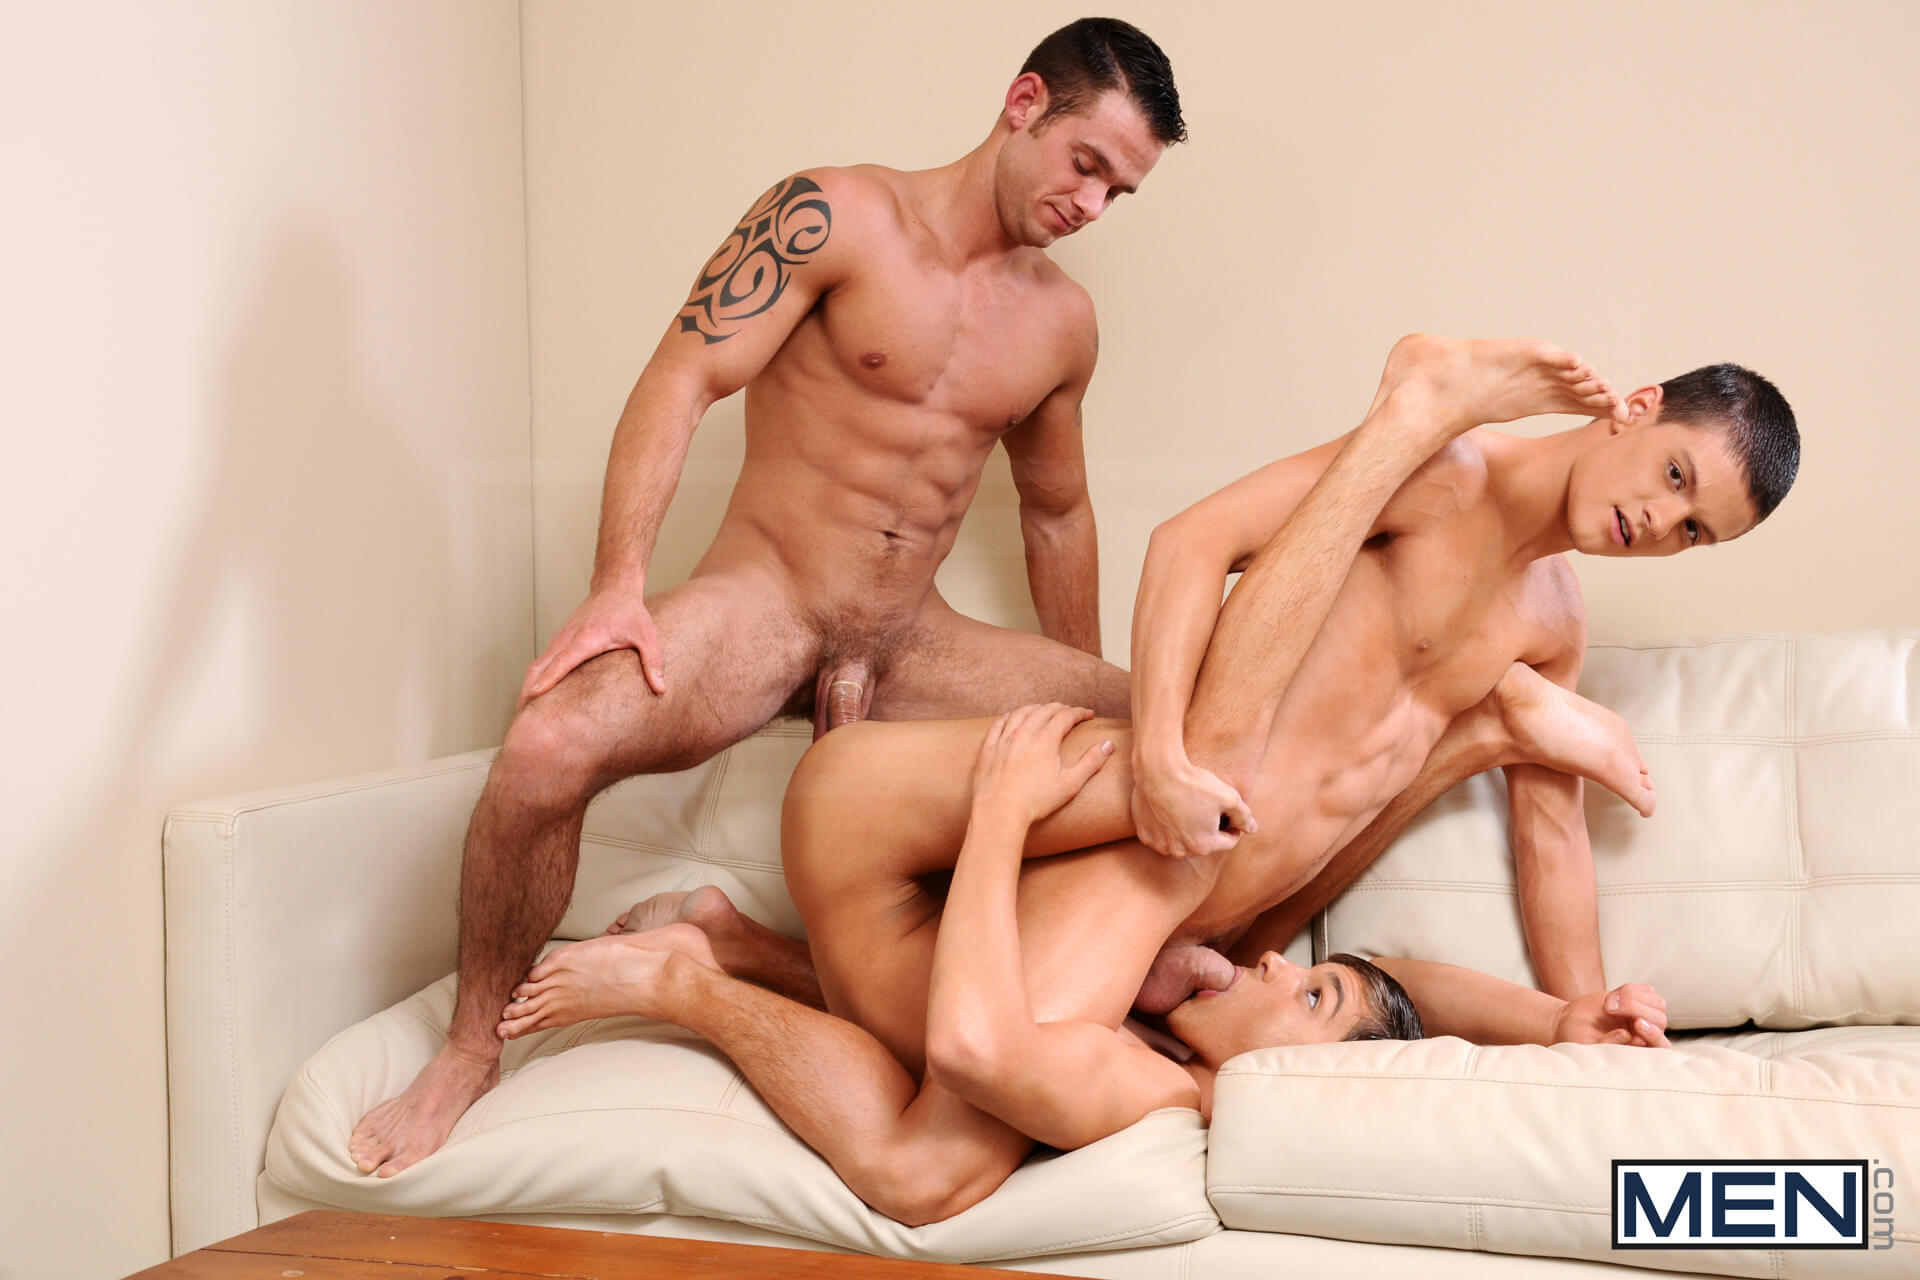 MEN.COM » Drill My Hole » Johnny In A Box Part 2 » Cooper Reed » Johnny Rapid » Tyler Sweet